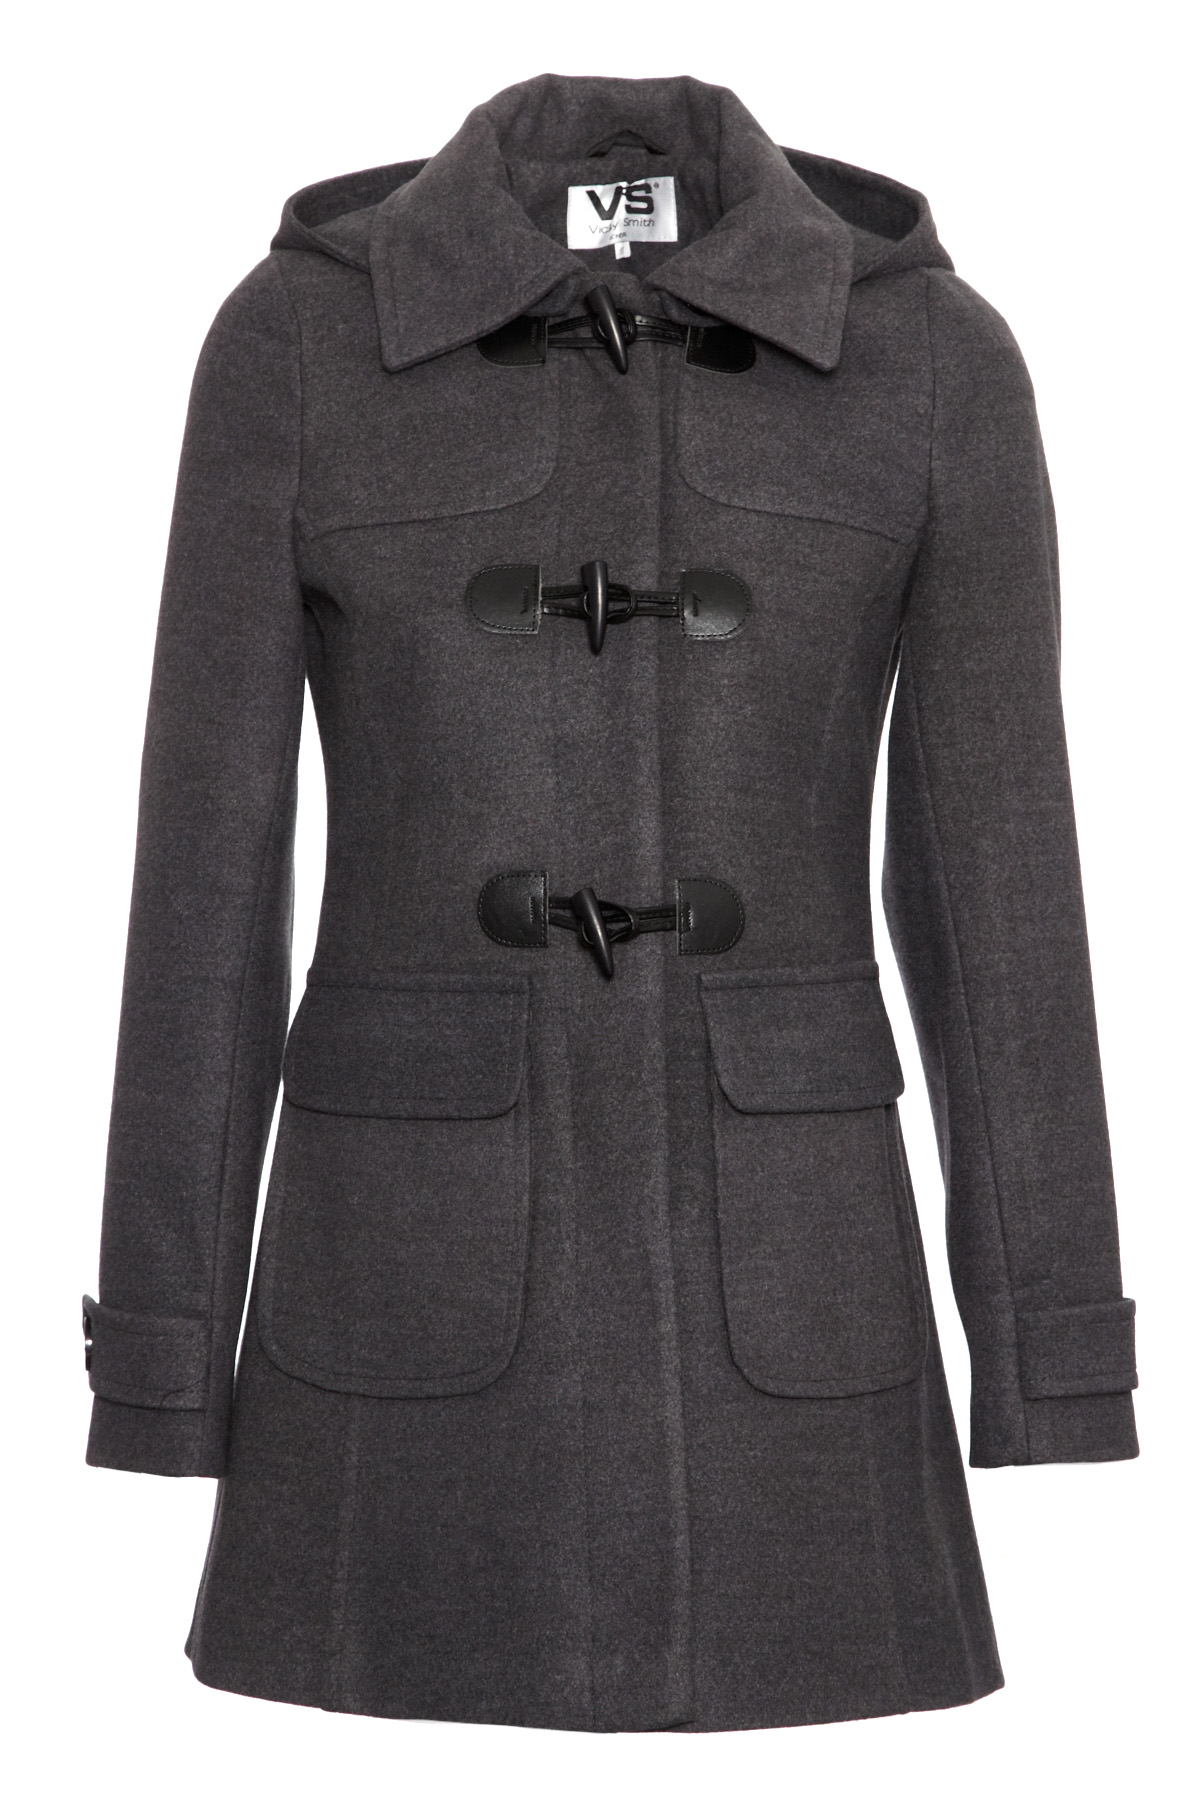 Vicky Smith - Womens Winter Duffle Coat | eBay